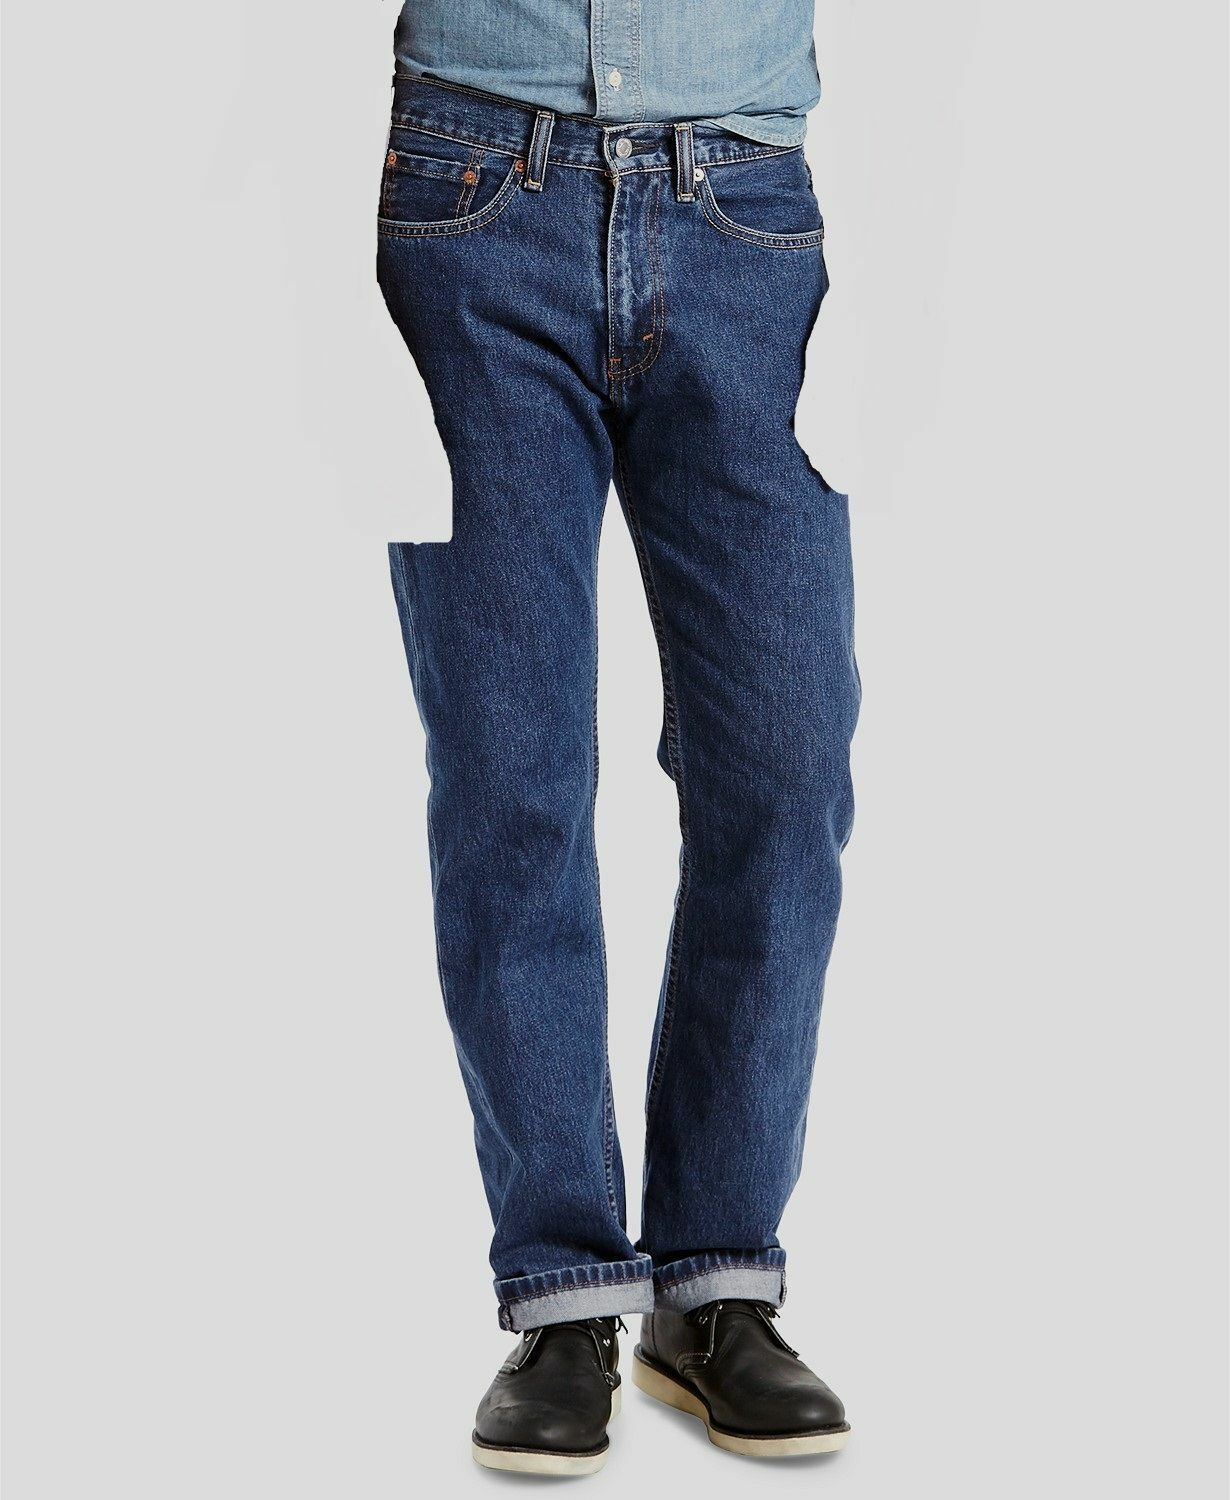 NWT Levi/'s 505 jeans 33 x 34 Regular Fit Retail $60   Style # 00505-1369